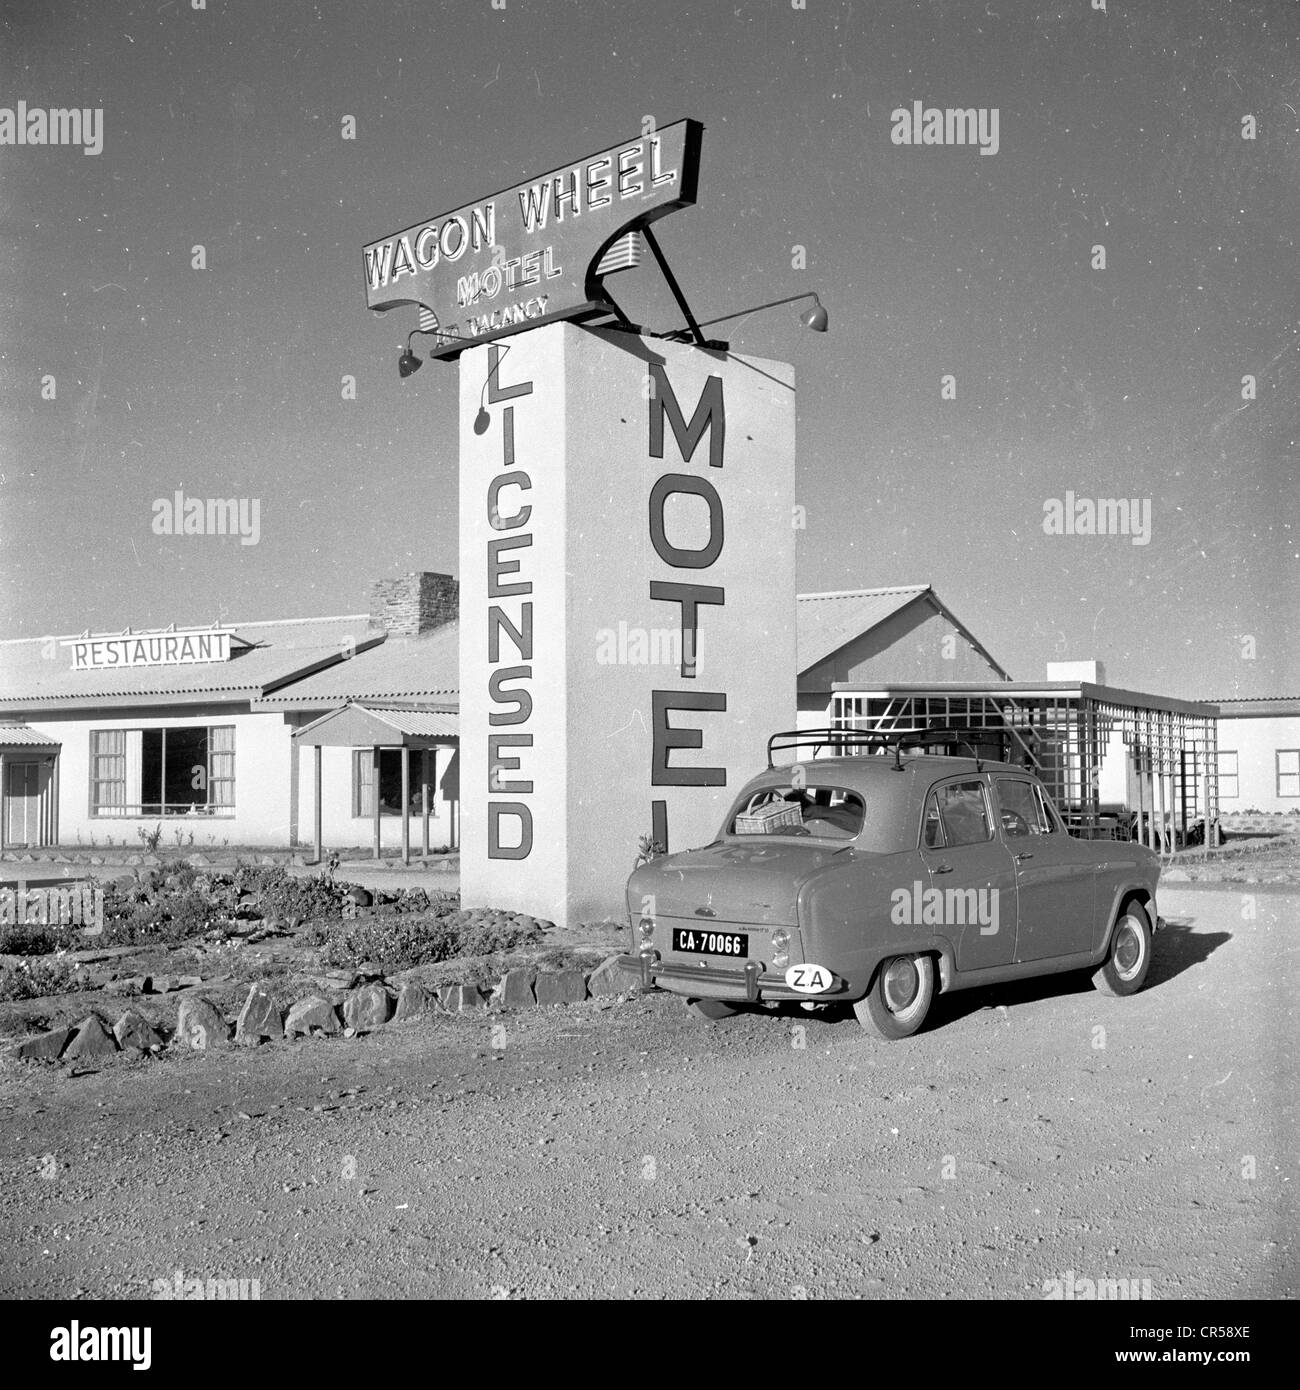 South Africa,1950s. Old car parked outside The Wagon Wheel motel ...